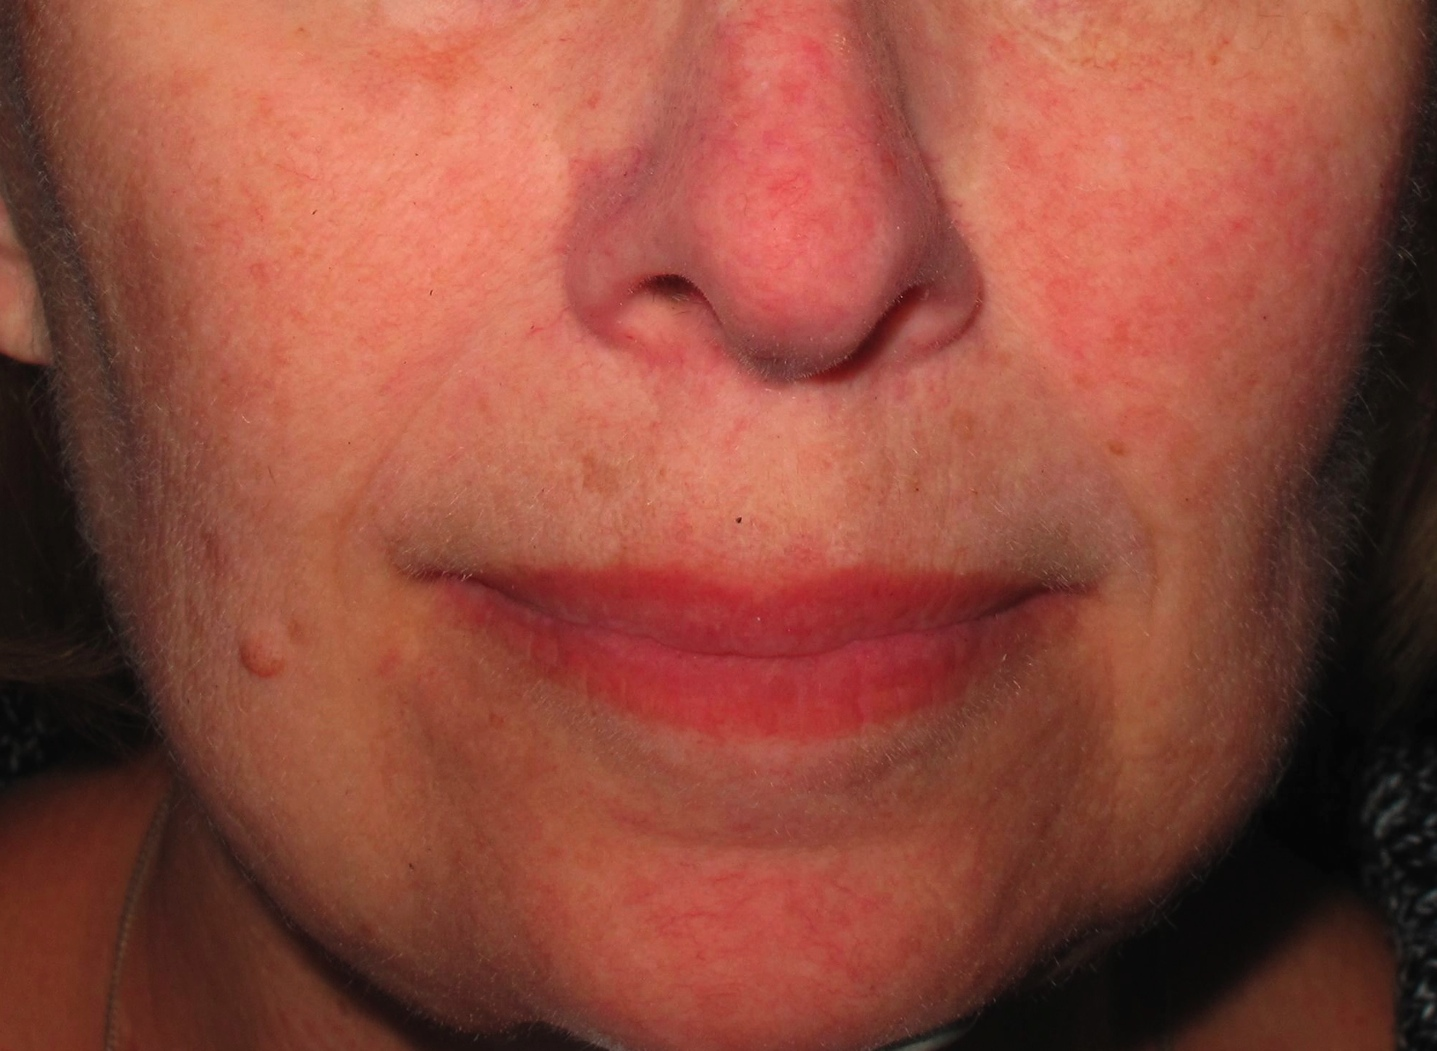 Treatment for redness